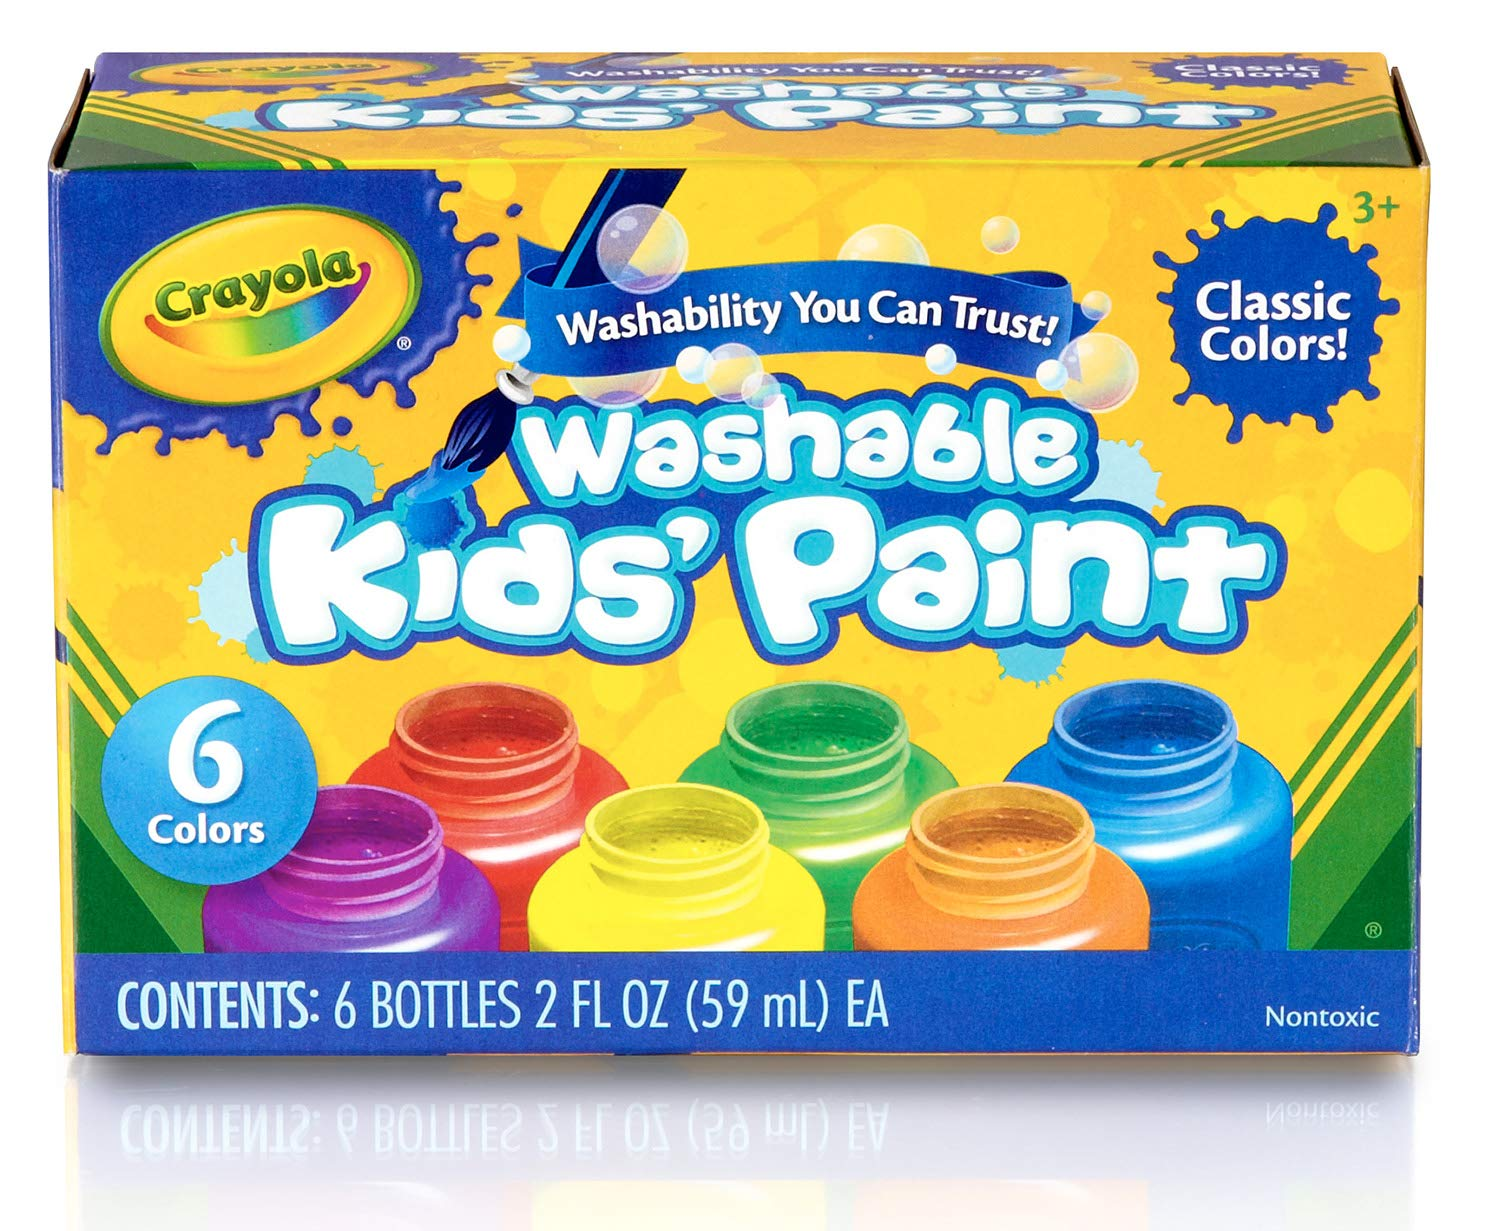 Crayola Kids' Paint